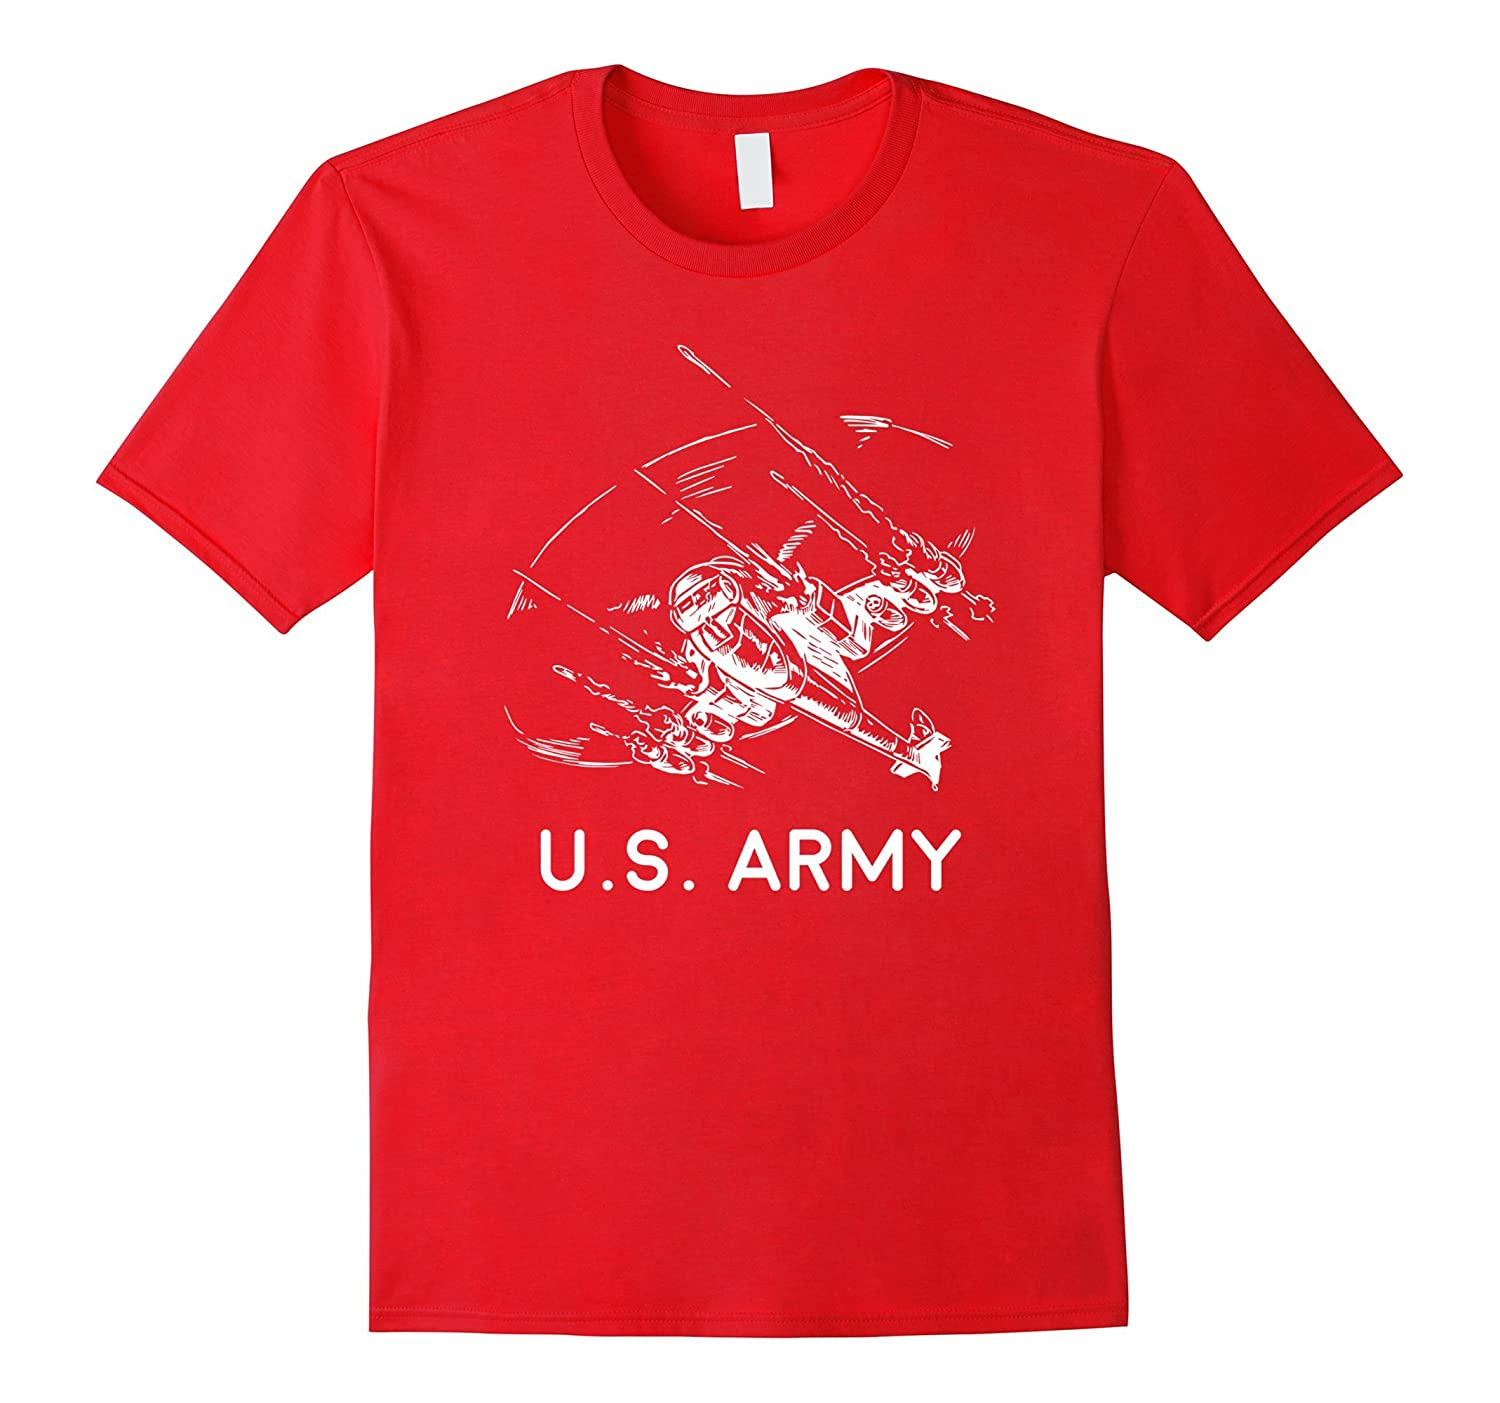 Army Helicopter T-shirt - U.S. Army-Art